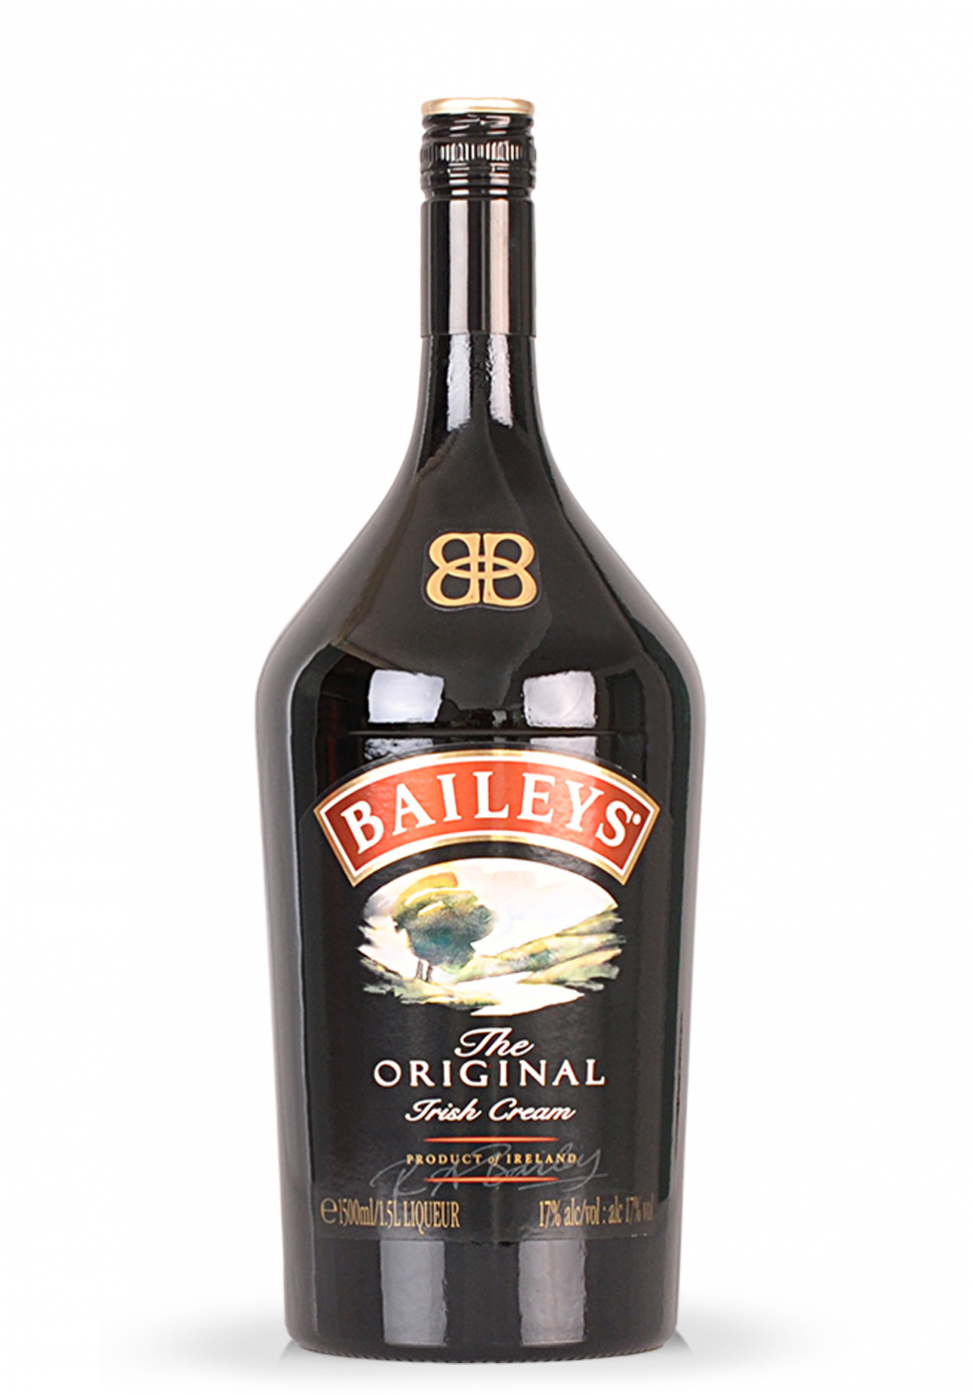 Lichior Baileys, The Original Irish Cream (1.5L)